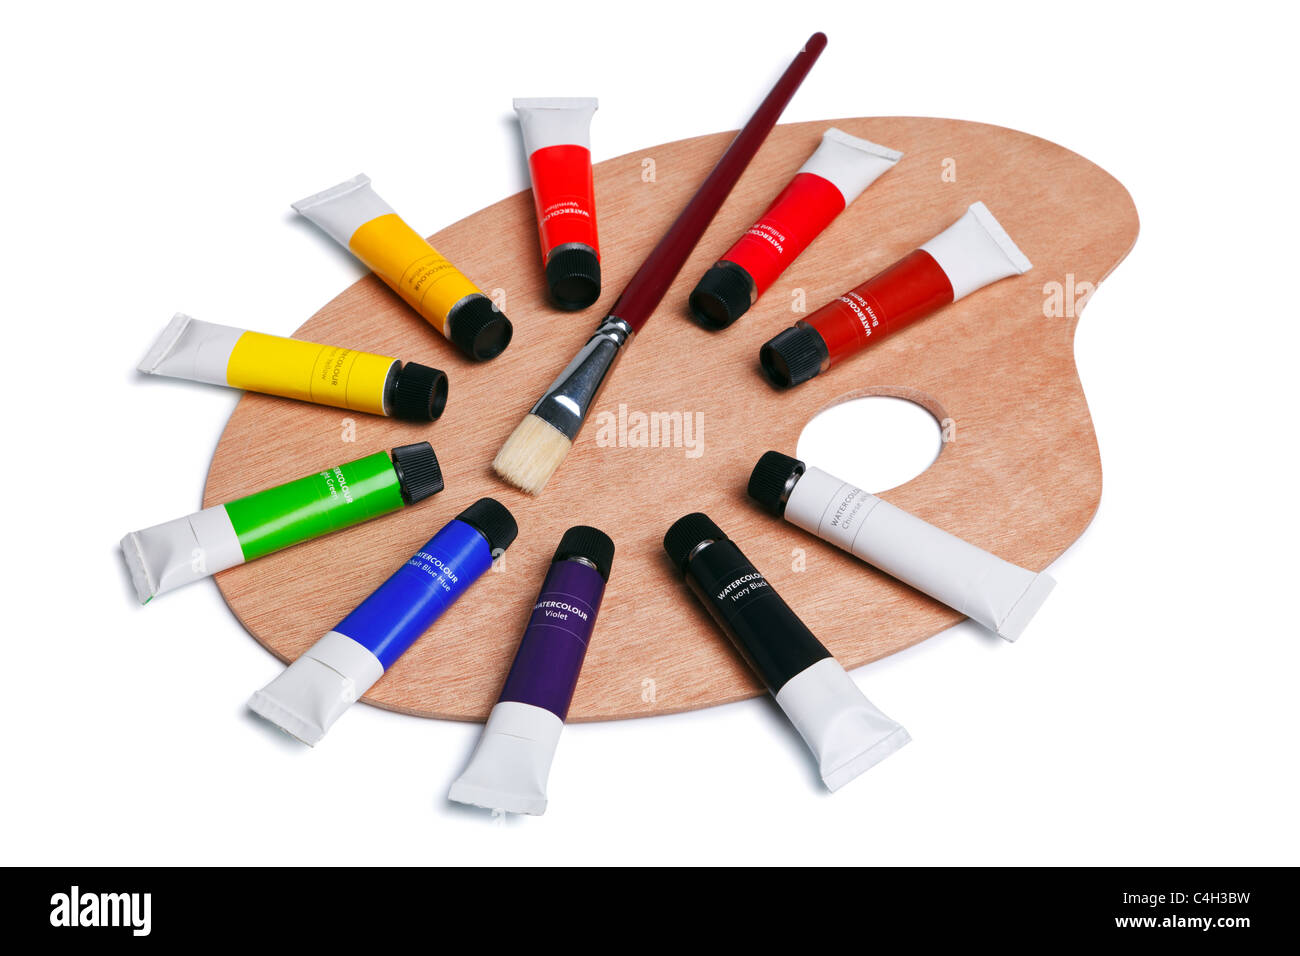 Photo of a wooden artists palette with tubes of watercolour paint and a brush, isolated on white with clipping path. - Stock Image